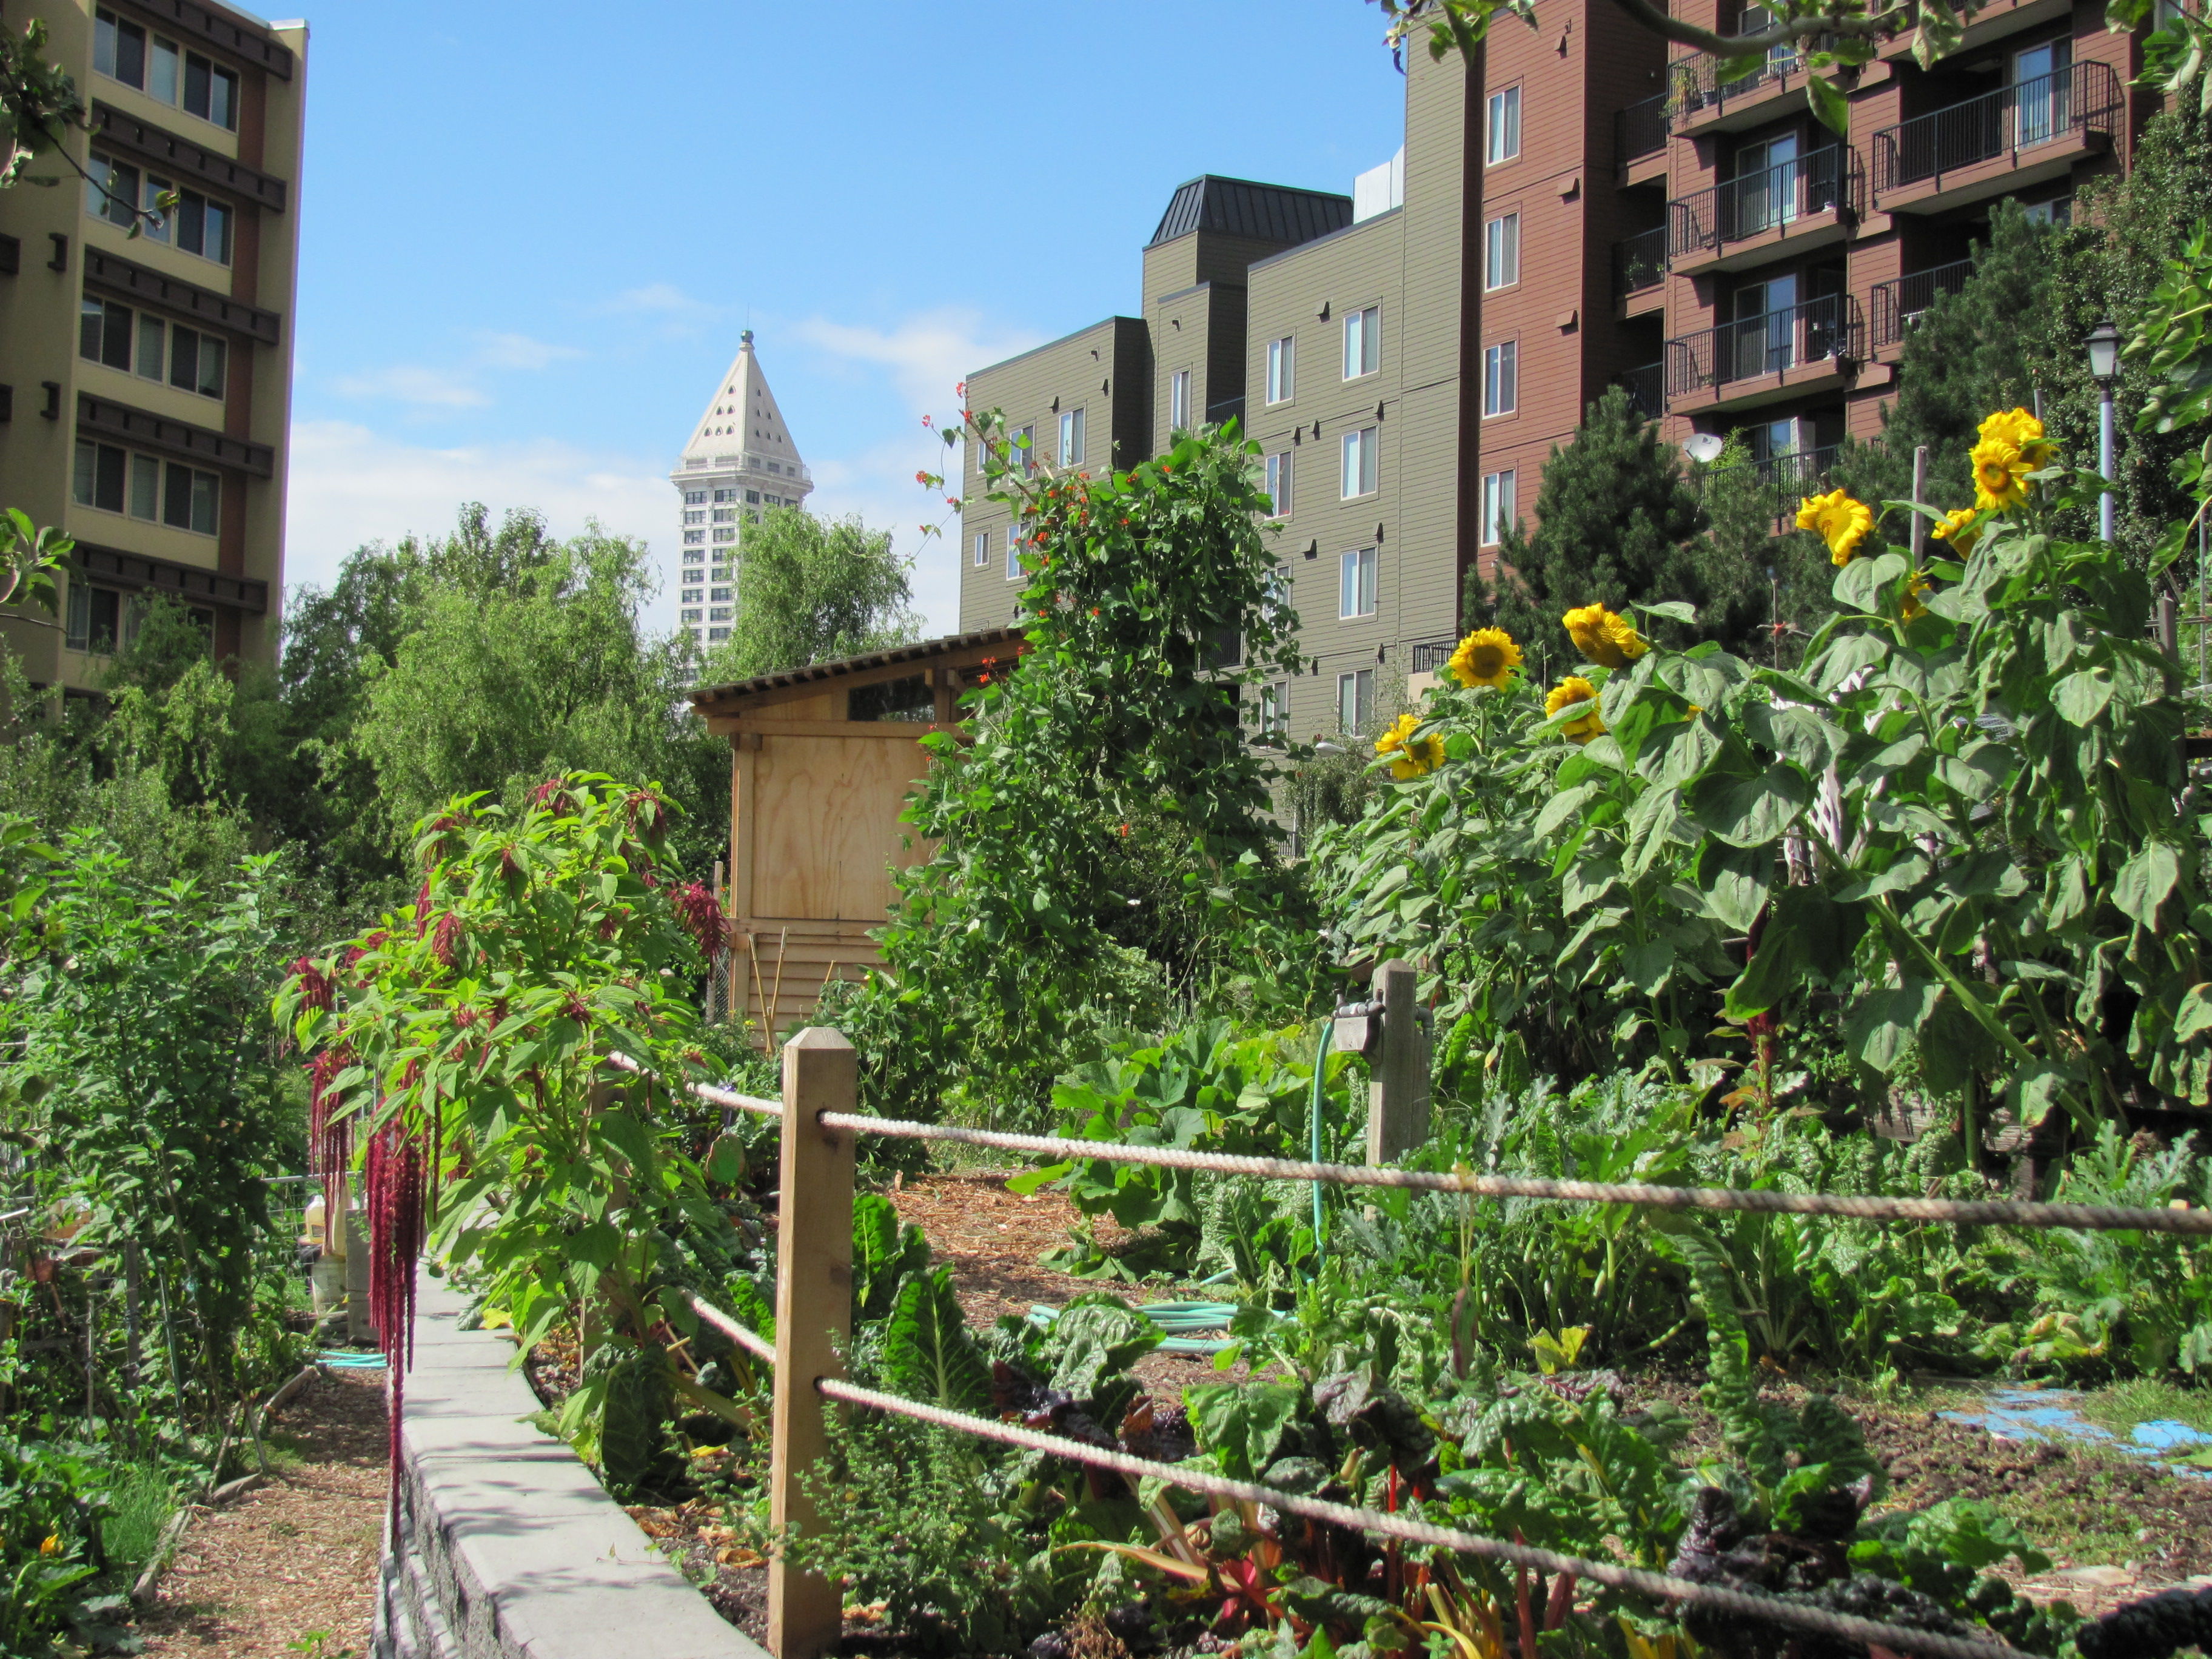 Garden Rooted in History | September 7, 2016 | Real Change